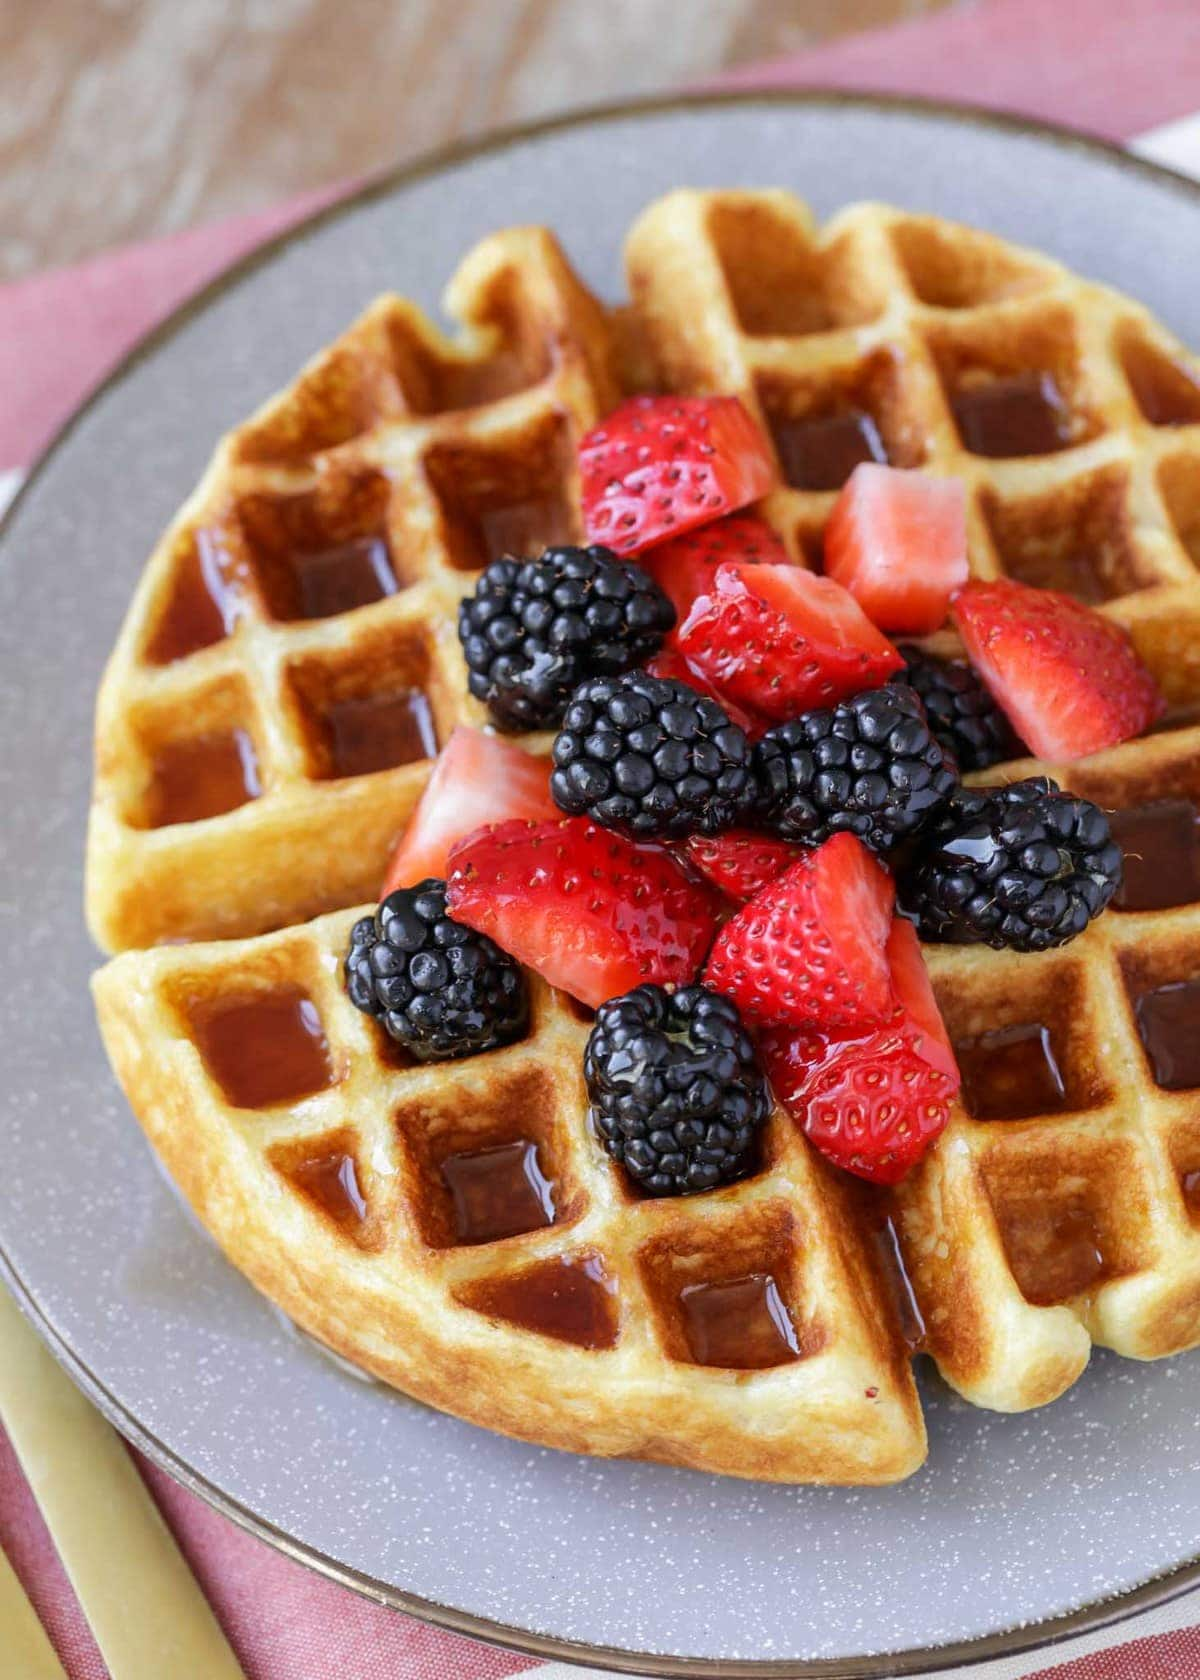 Homemade Belgian Waffles Recipe (+VIDEO